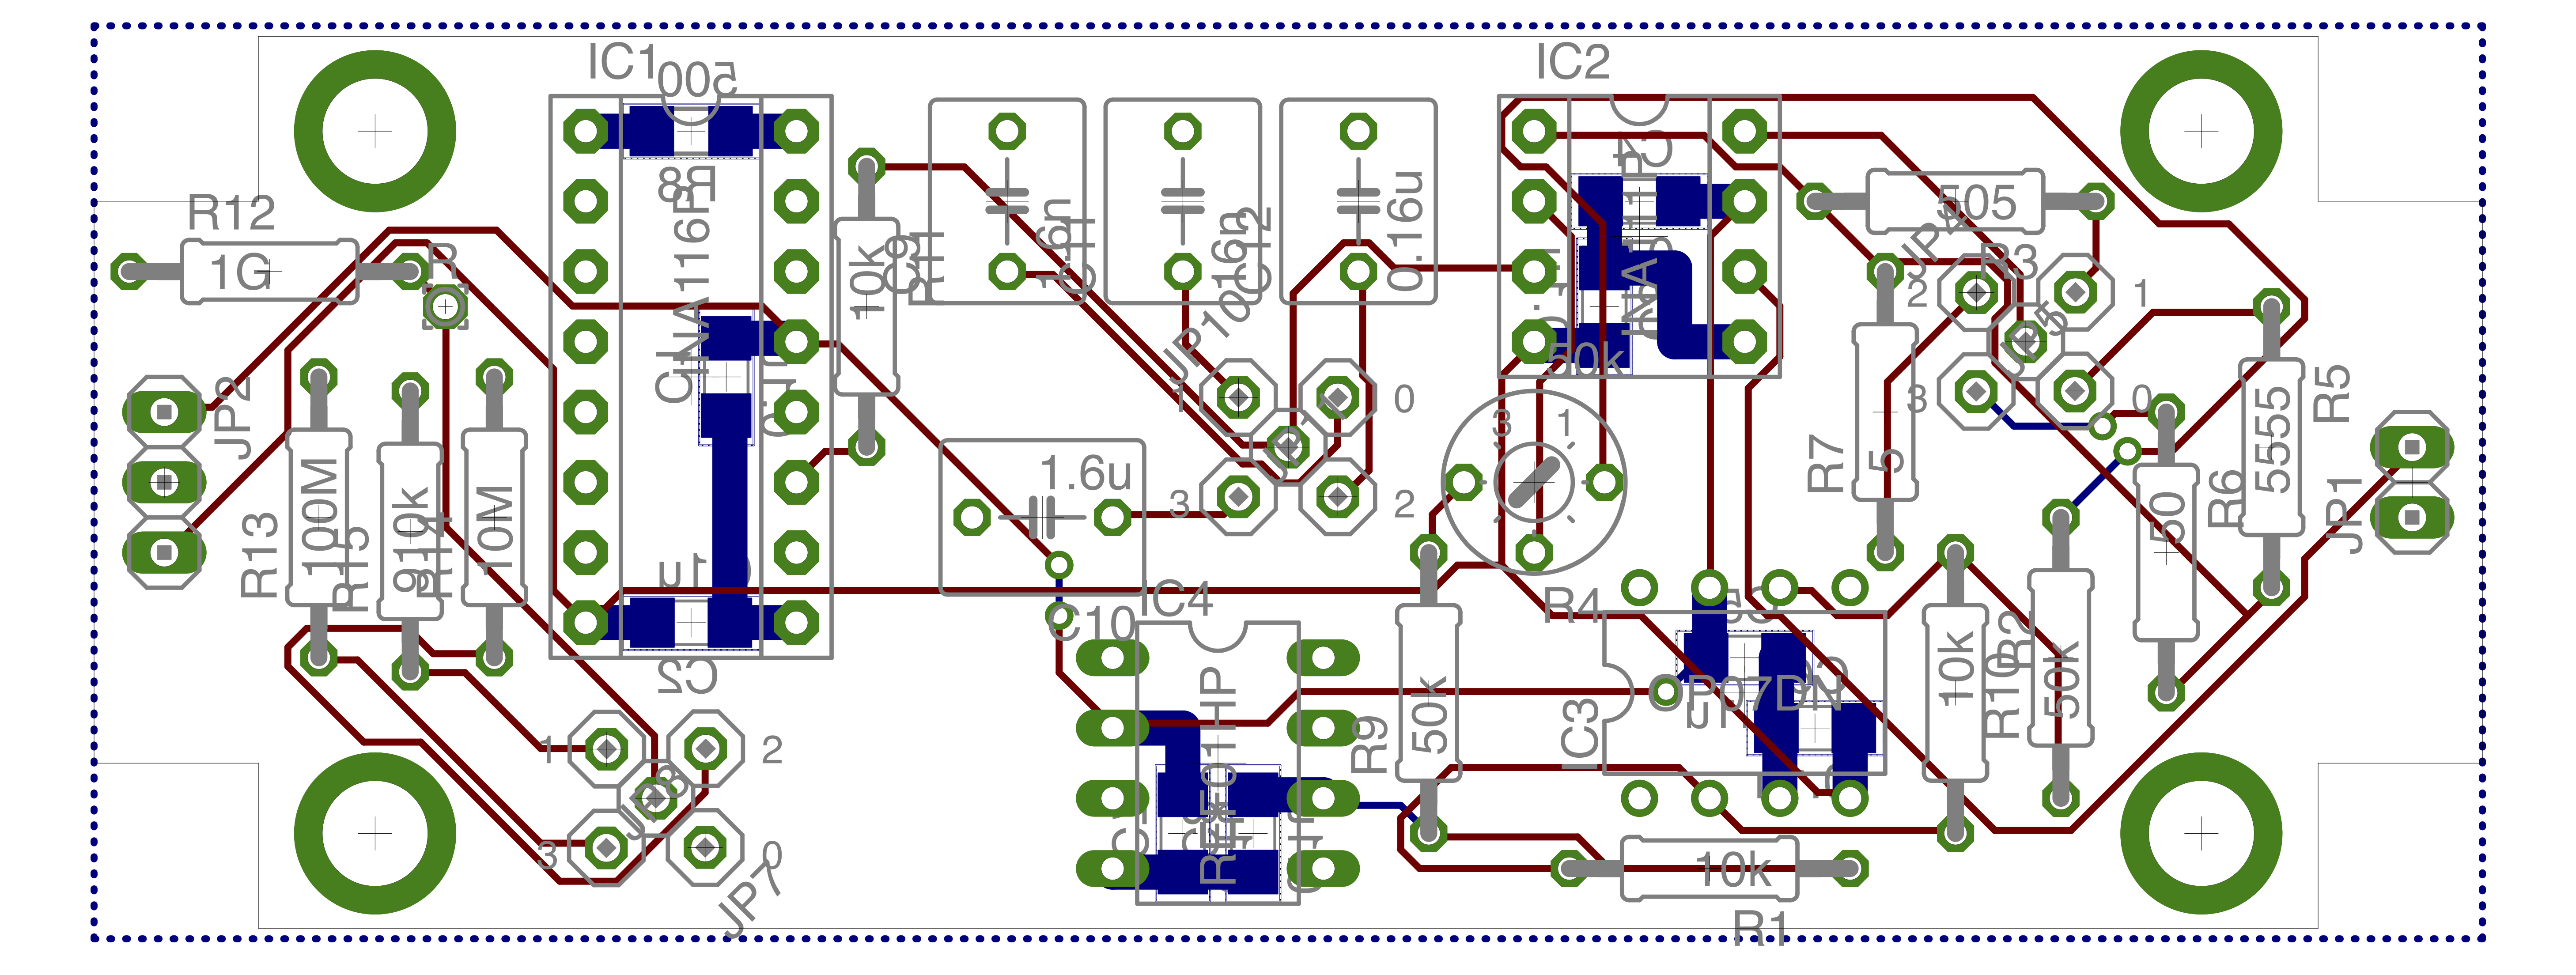 Transimpedance Amplifiers Open Hardware From The Kandel Lab Amplifier Circuit Diagram For